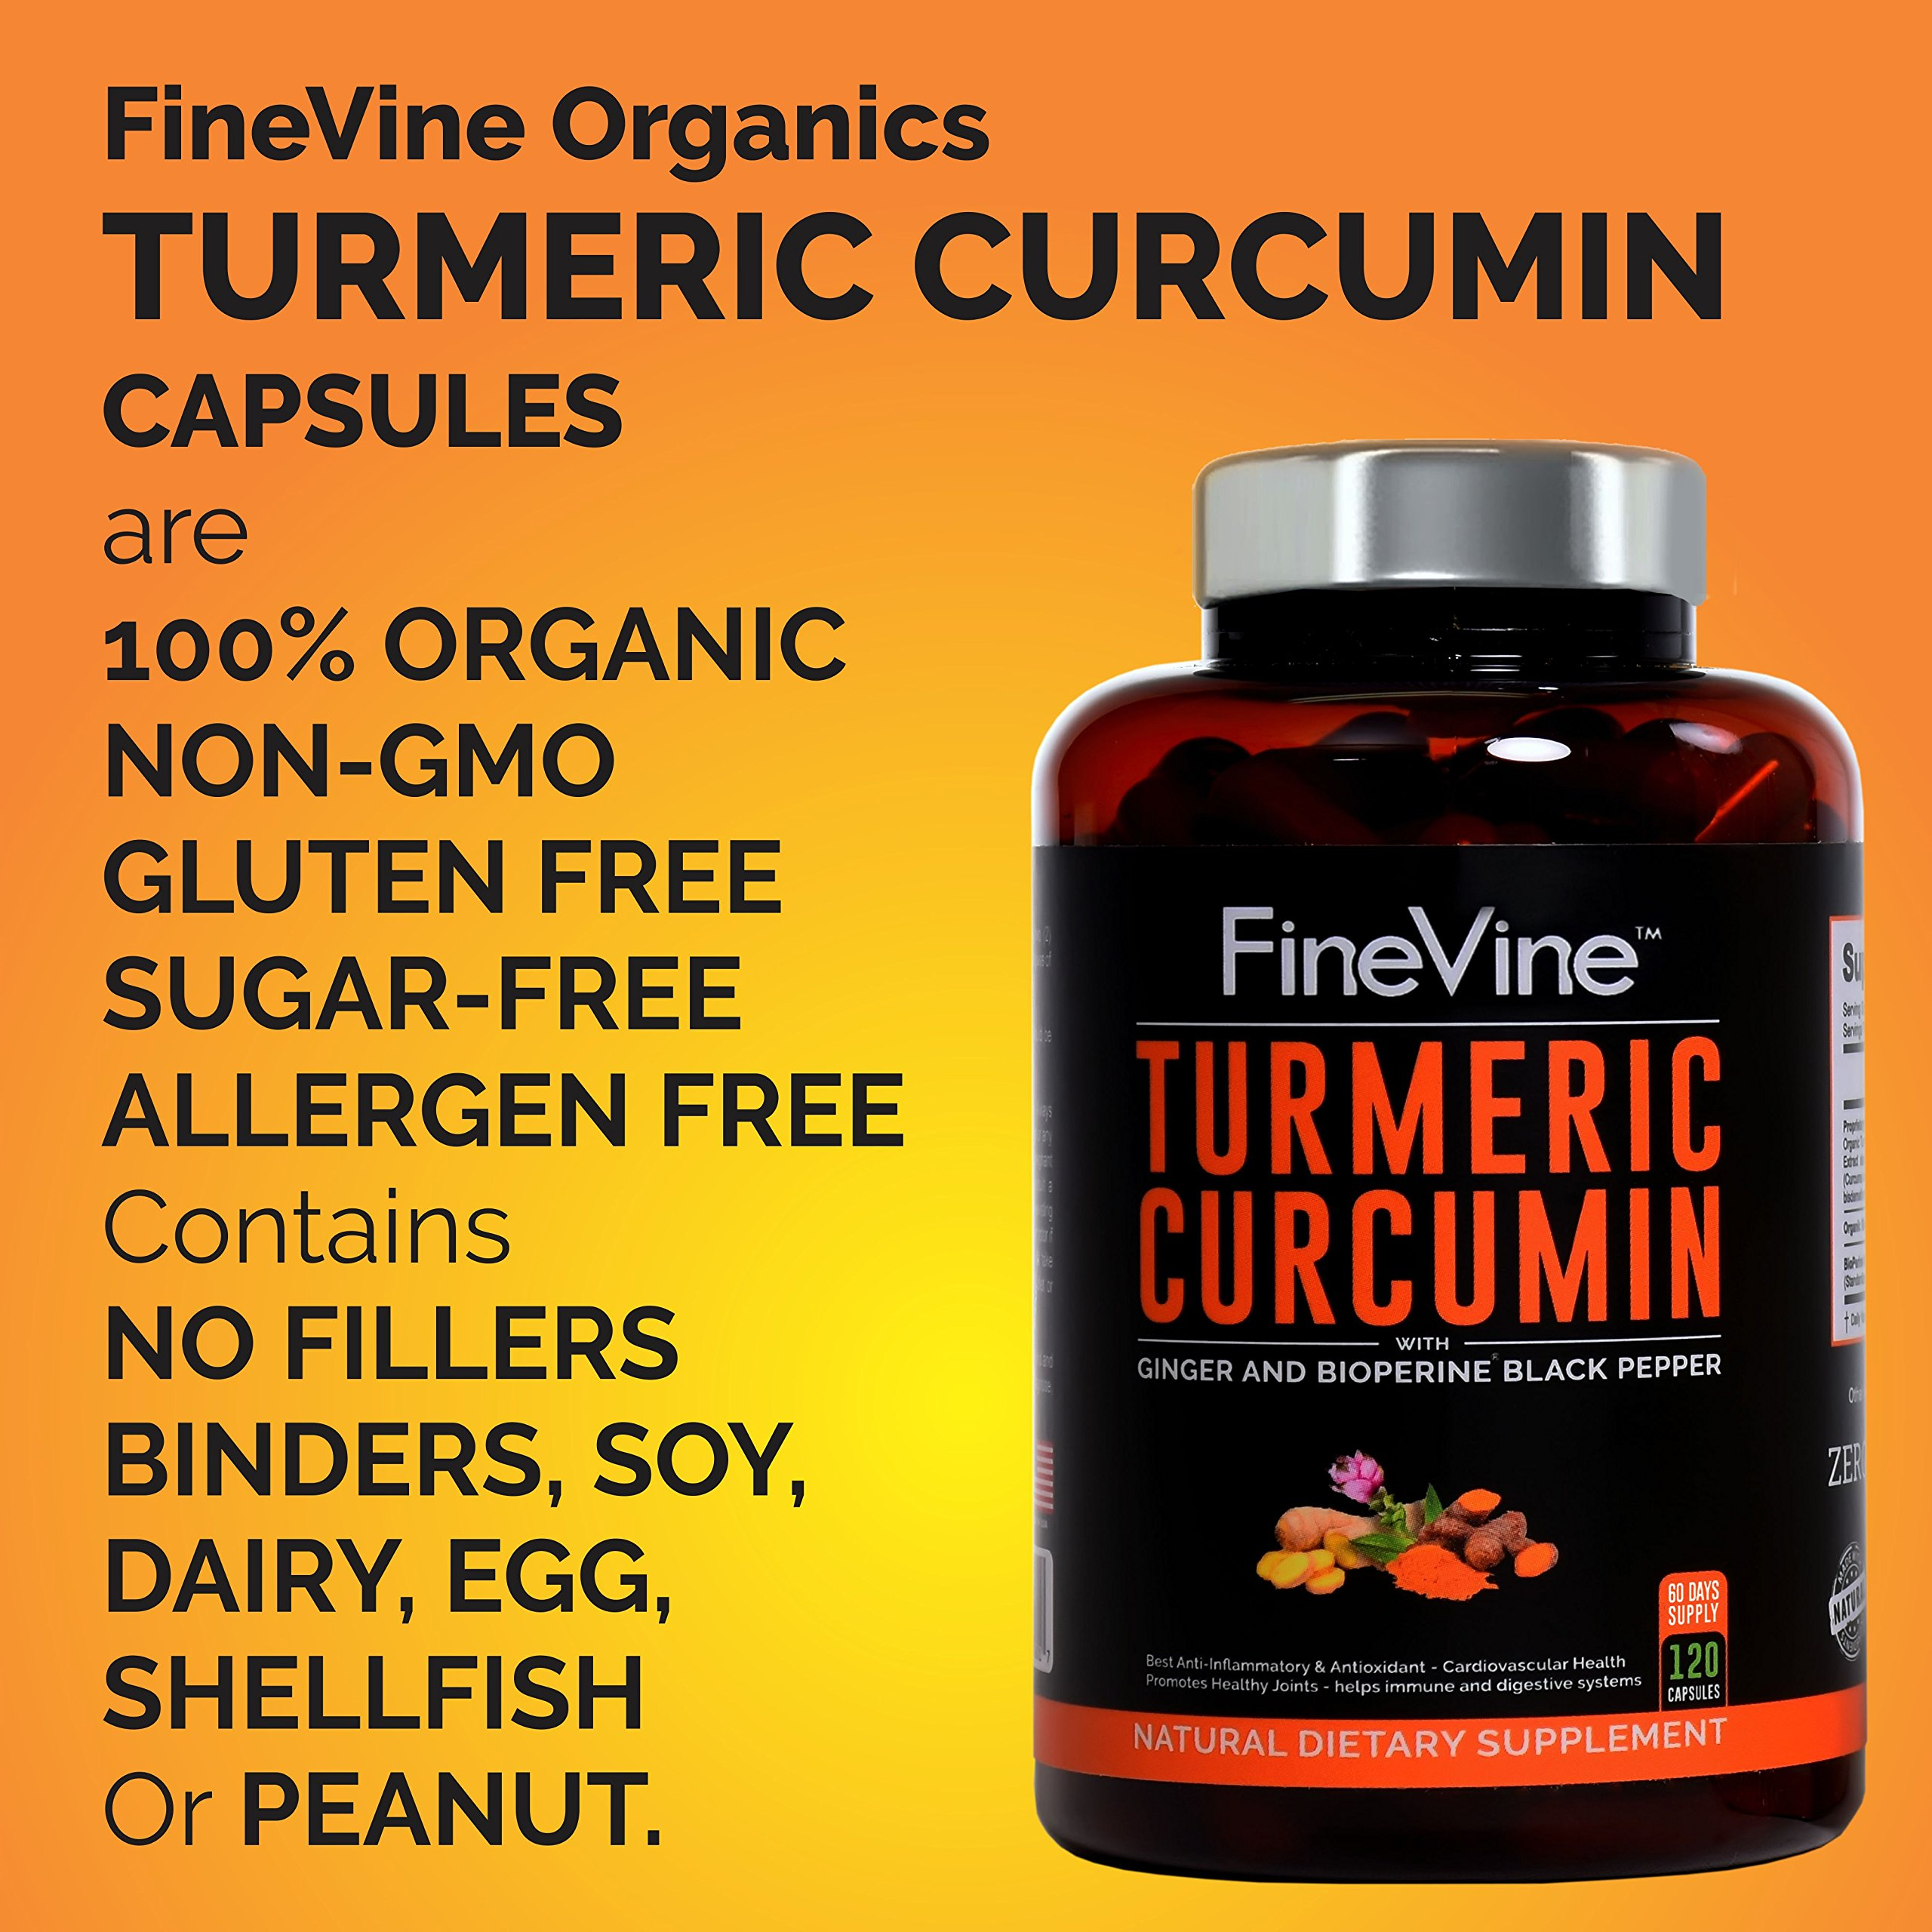 Turmeric Curcumin with BioPerine Black Pepper and Ginger - Made in USA - 120 Vegetarian Capsules for Advanced Absorption, Cardiovascular Health, Joints Support and Anti Aging Supplement (120 Capsules) by FineVine (Image #6)